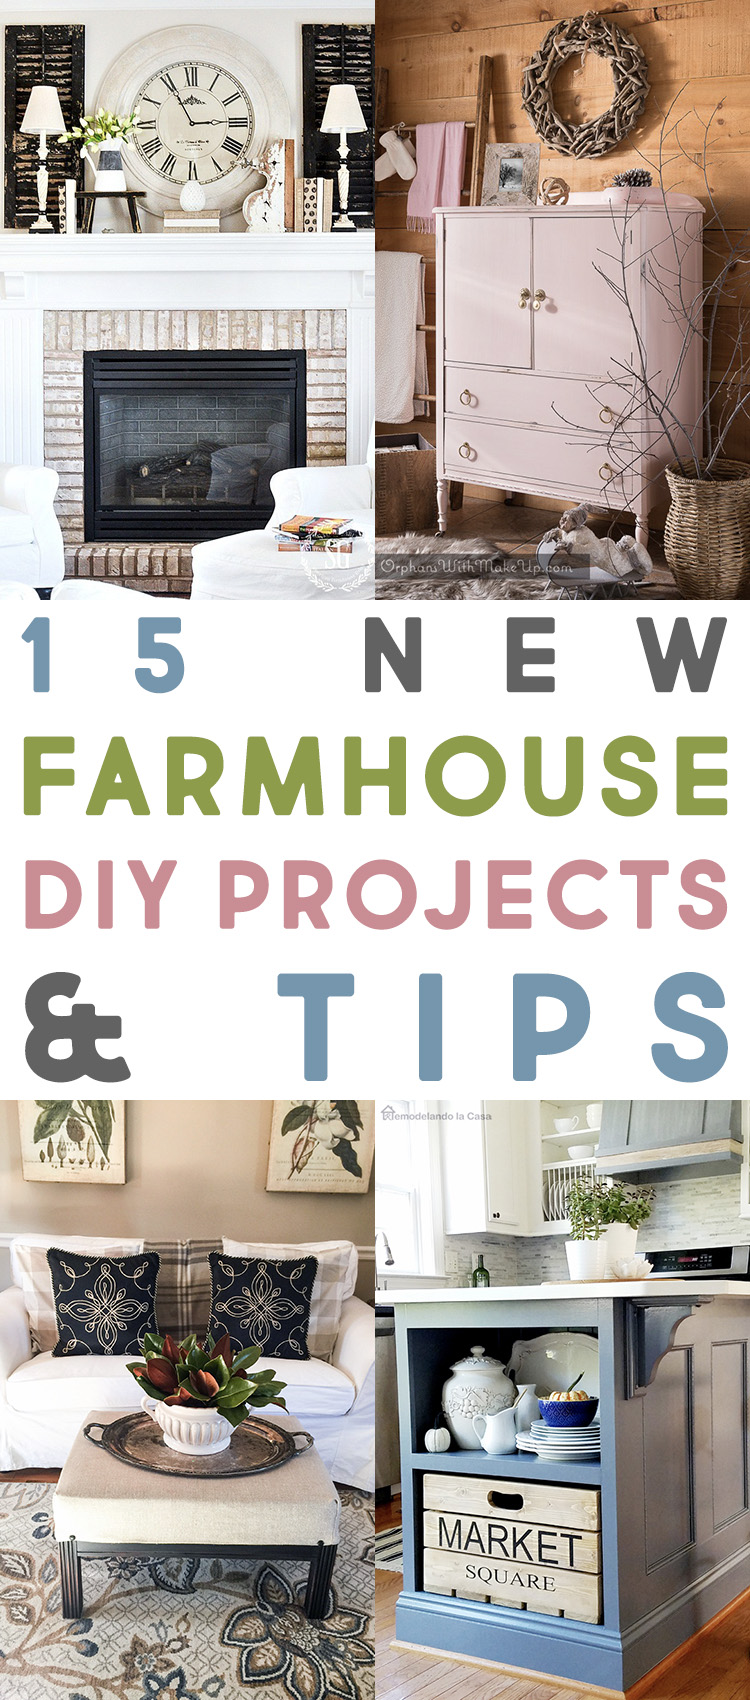 15 New Farmhouse DIY Projects and Tips!